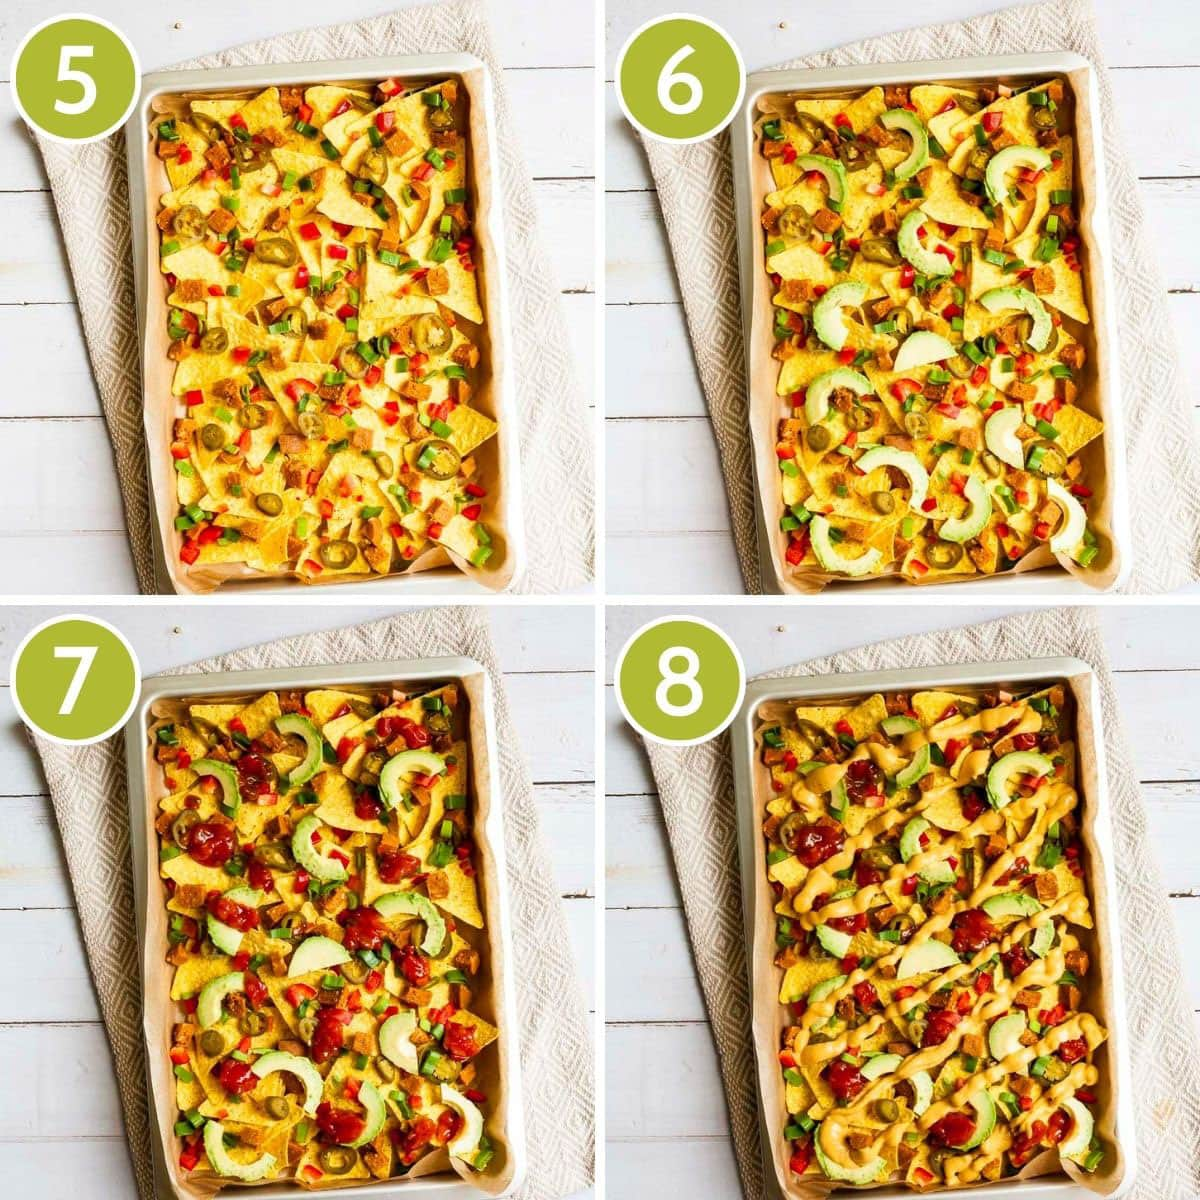 4 photo collage on how to layer vegan nachos continuing with chopped spring onion, avocado slices, red sauce, yellow sauce.